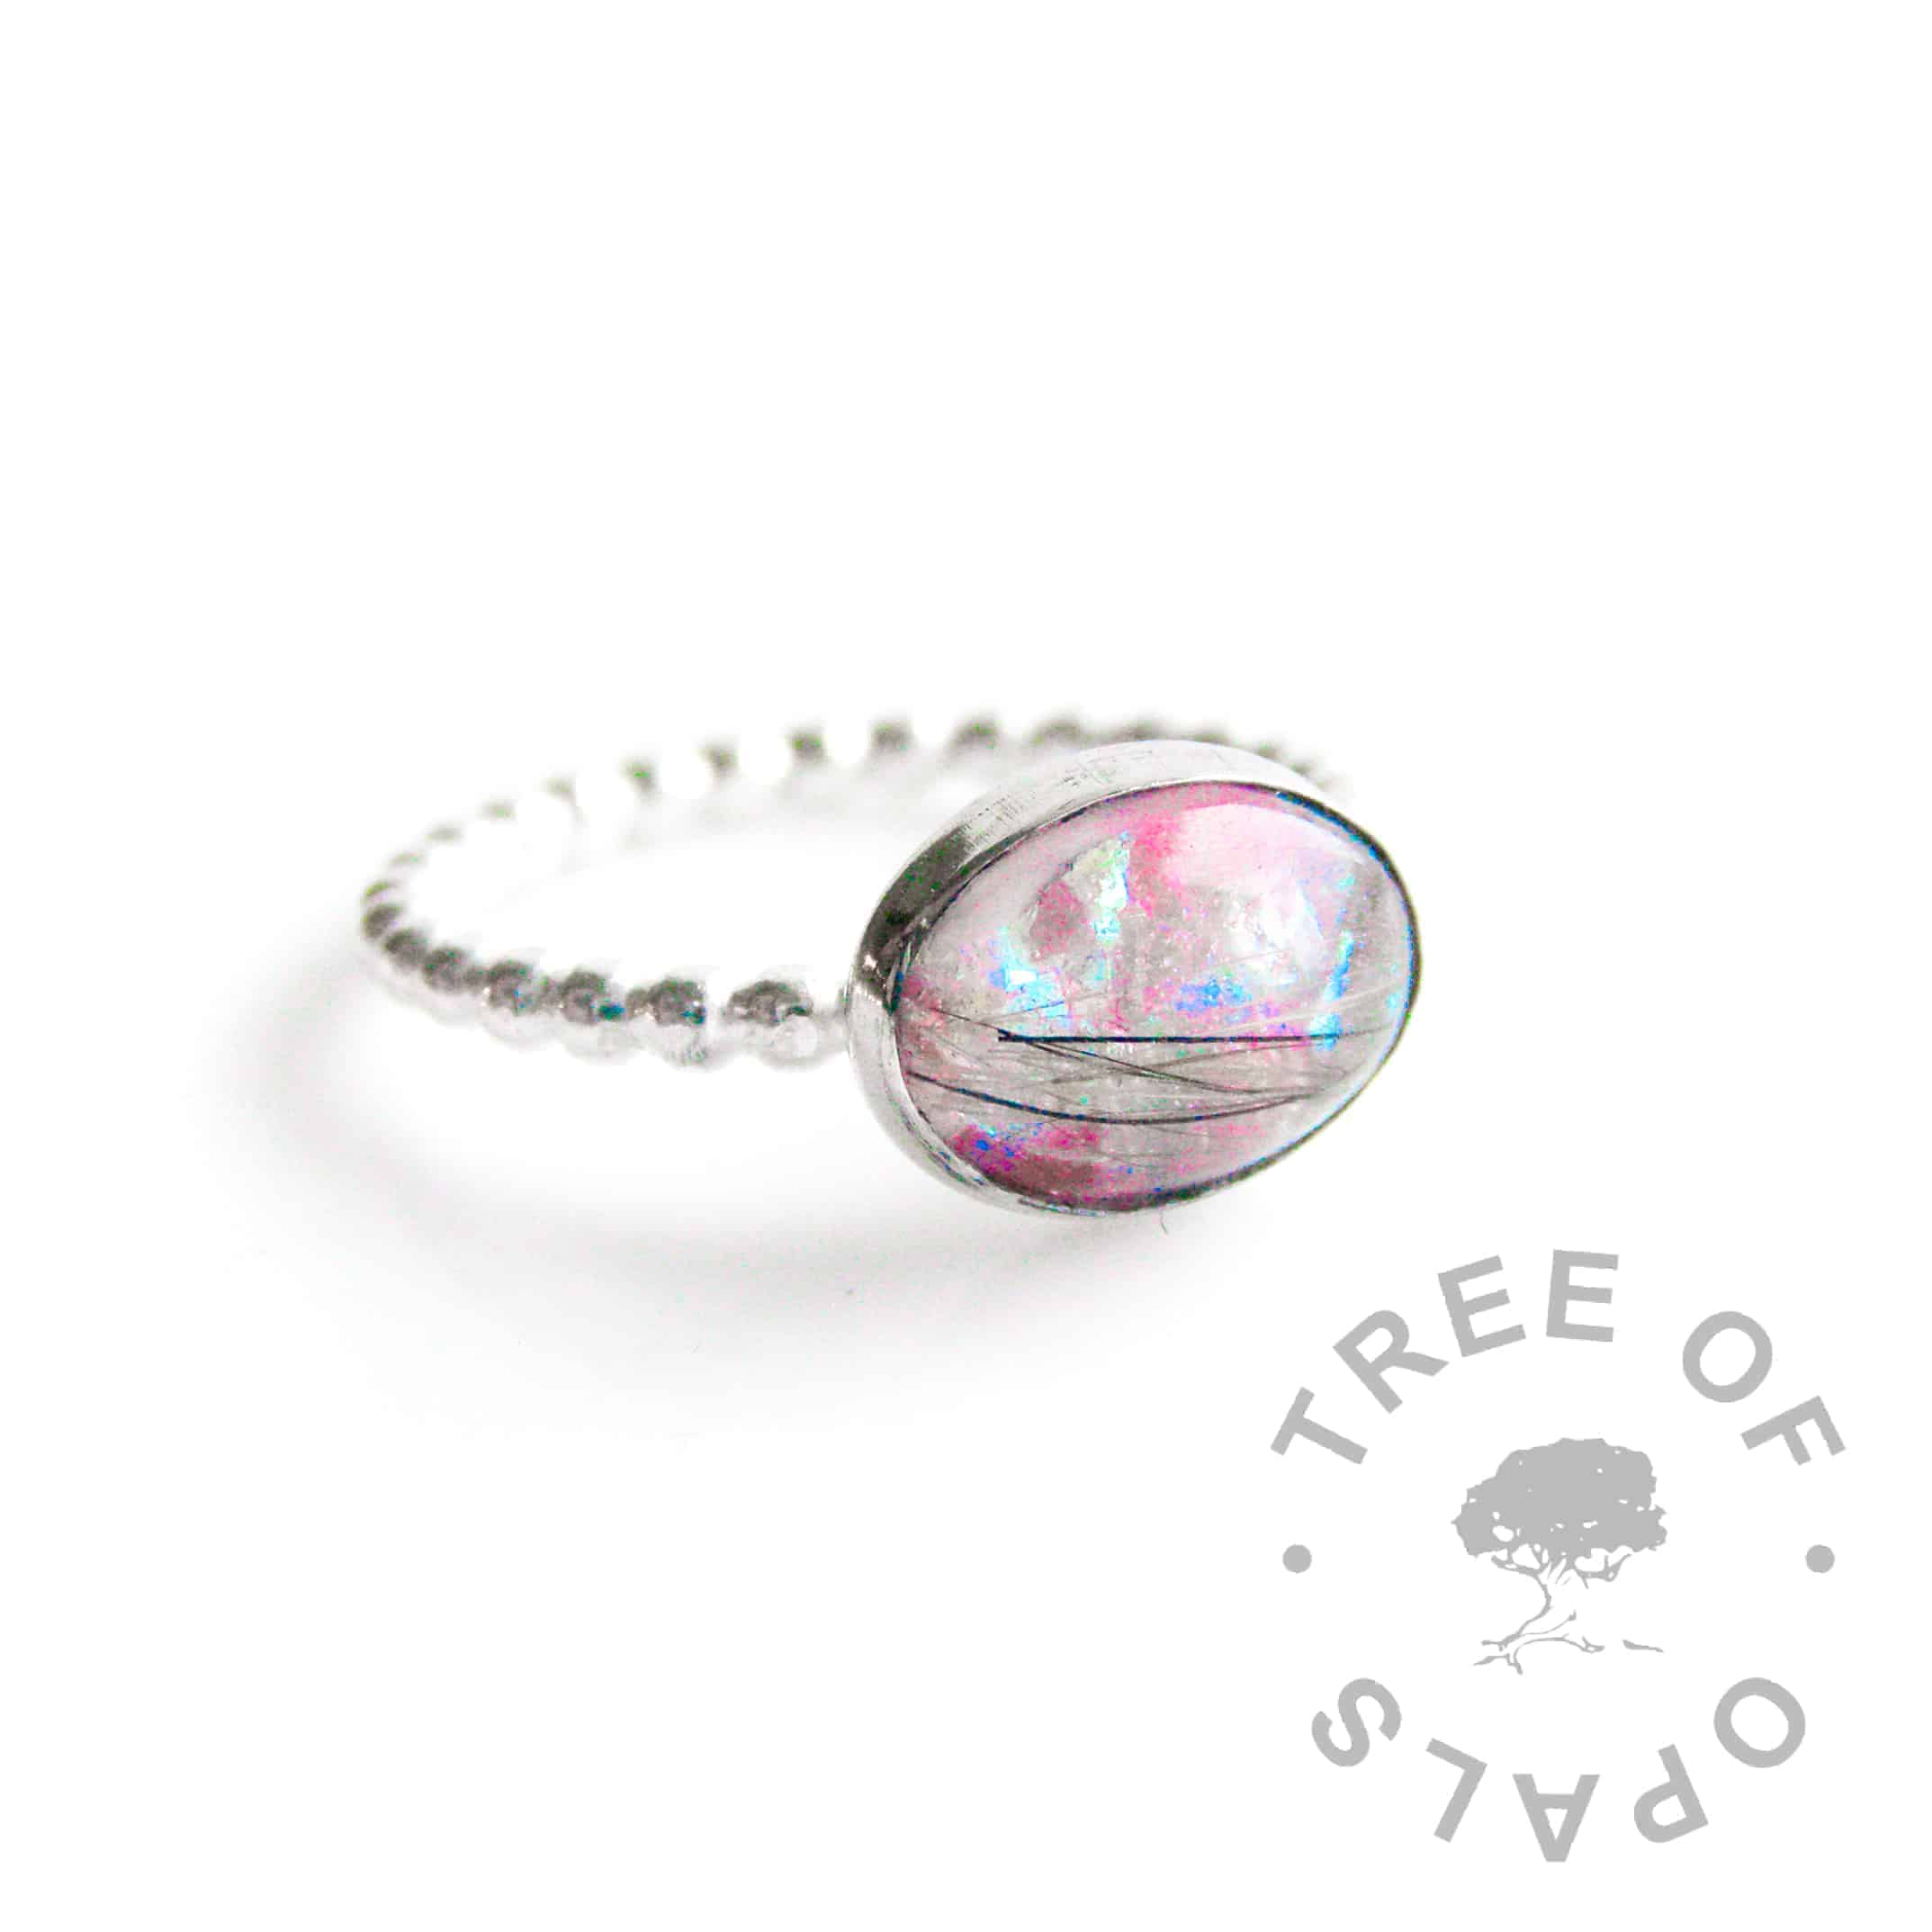 lock of hair ring with fur and pink opalescent flakes, bubble wire ring band